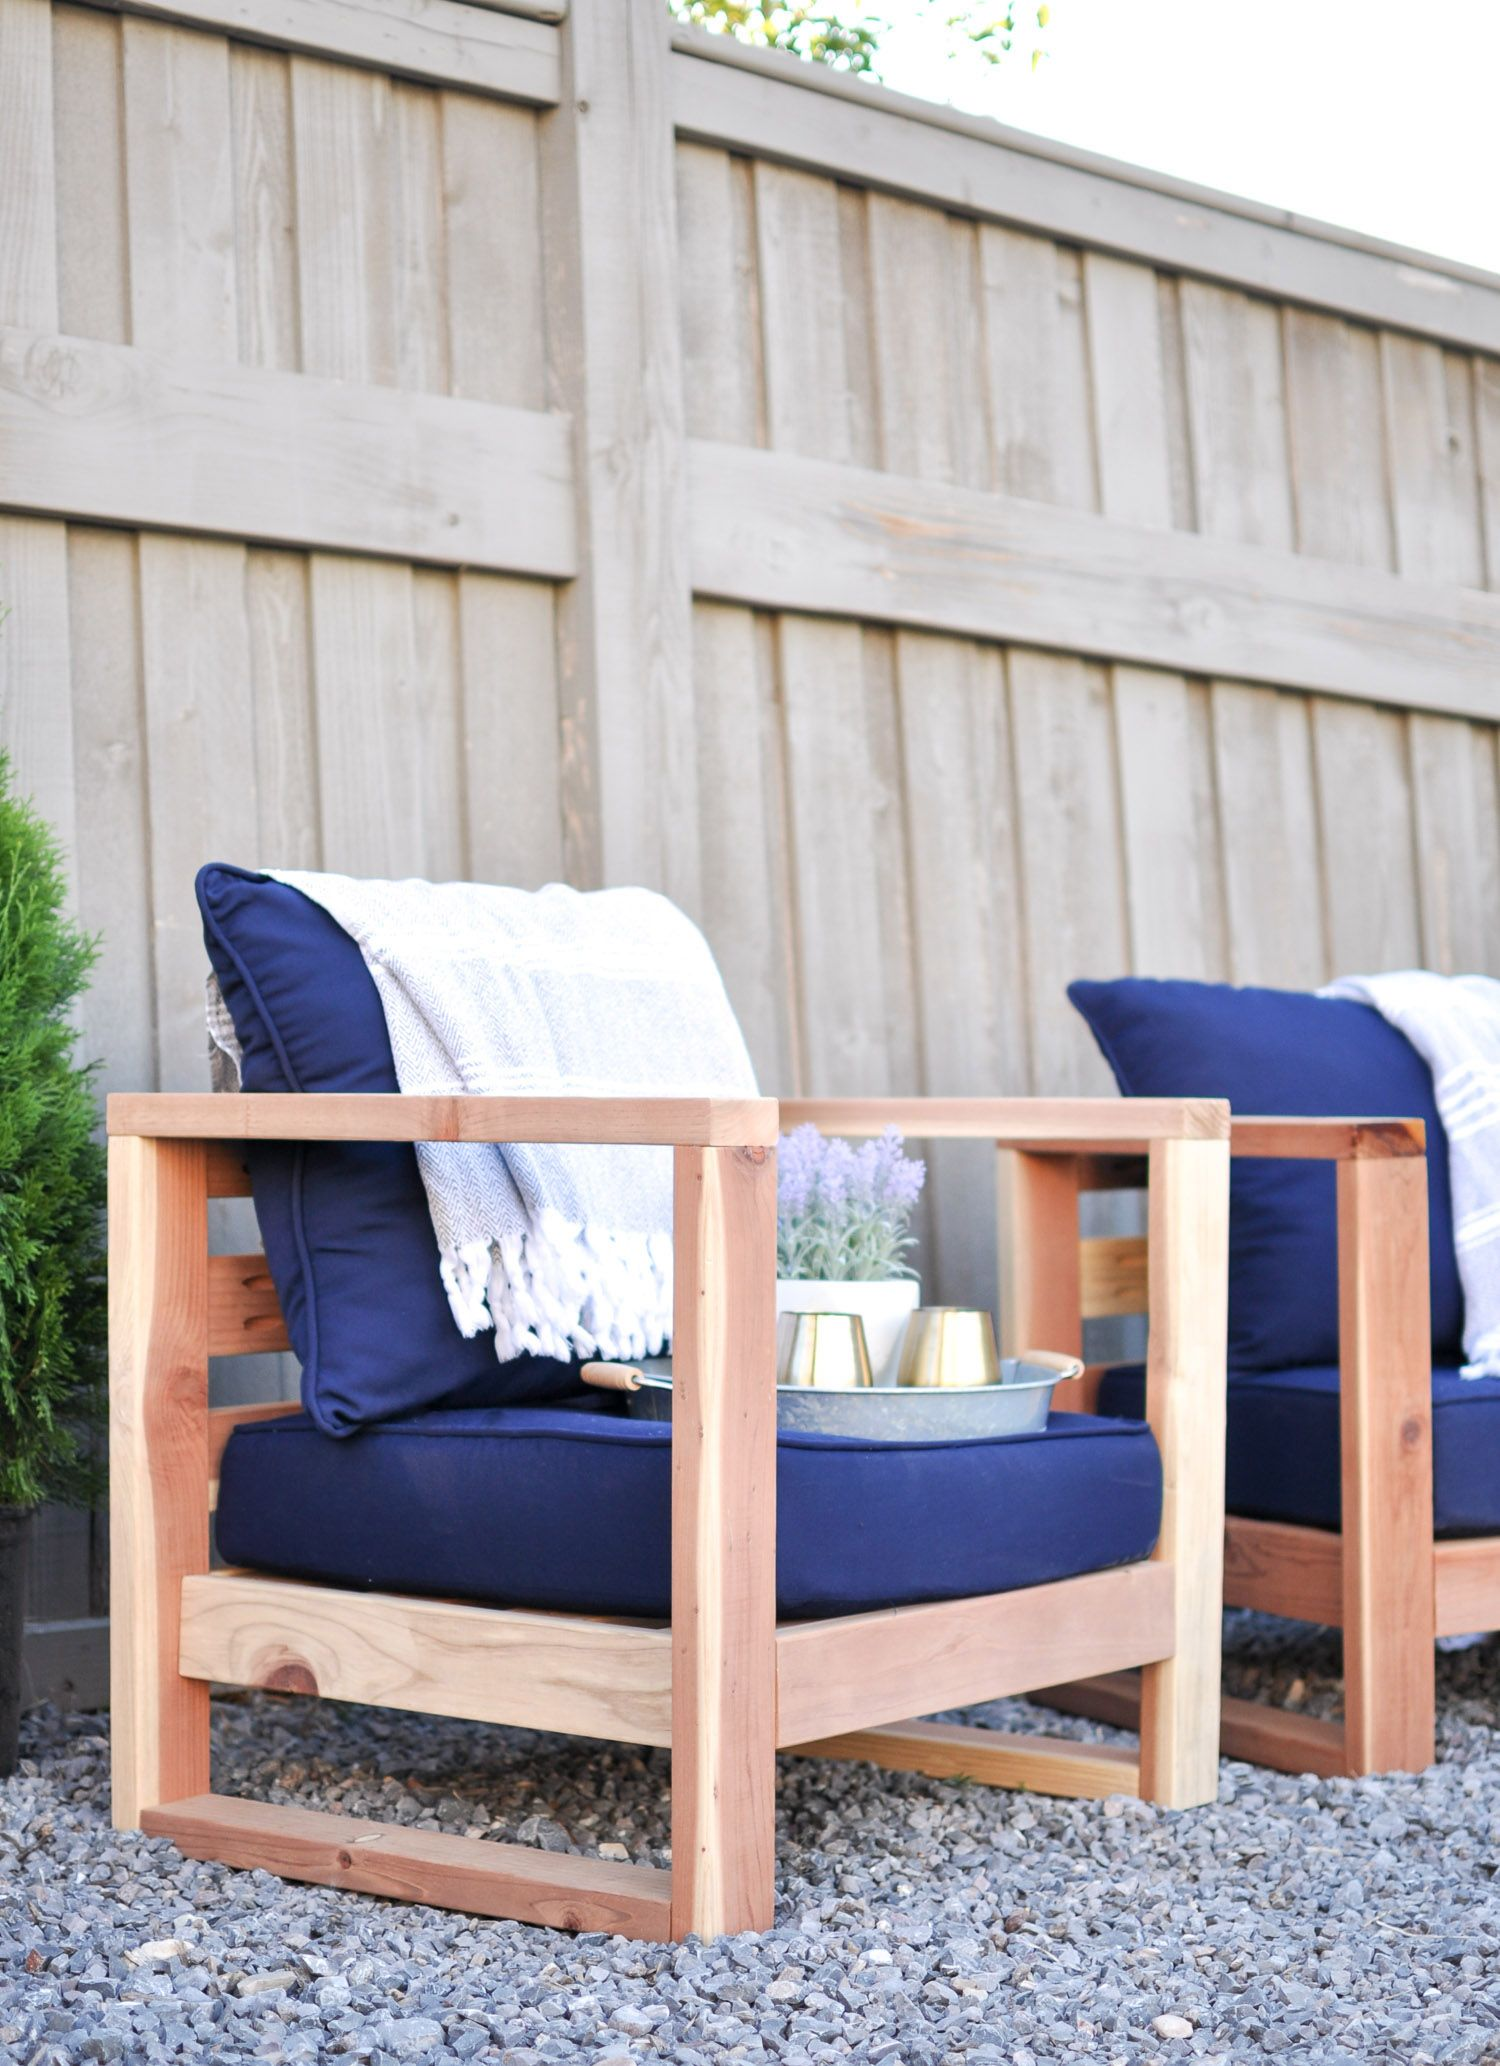 diy modern outdoor chair free plans | outdoor furniture